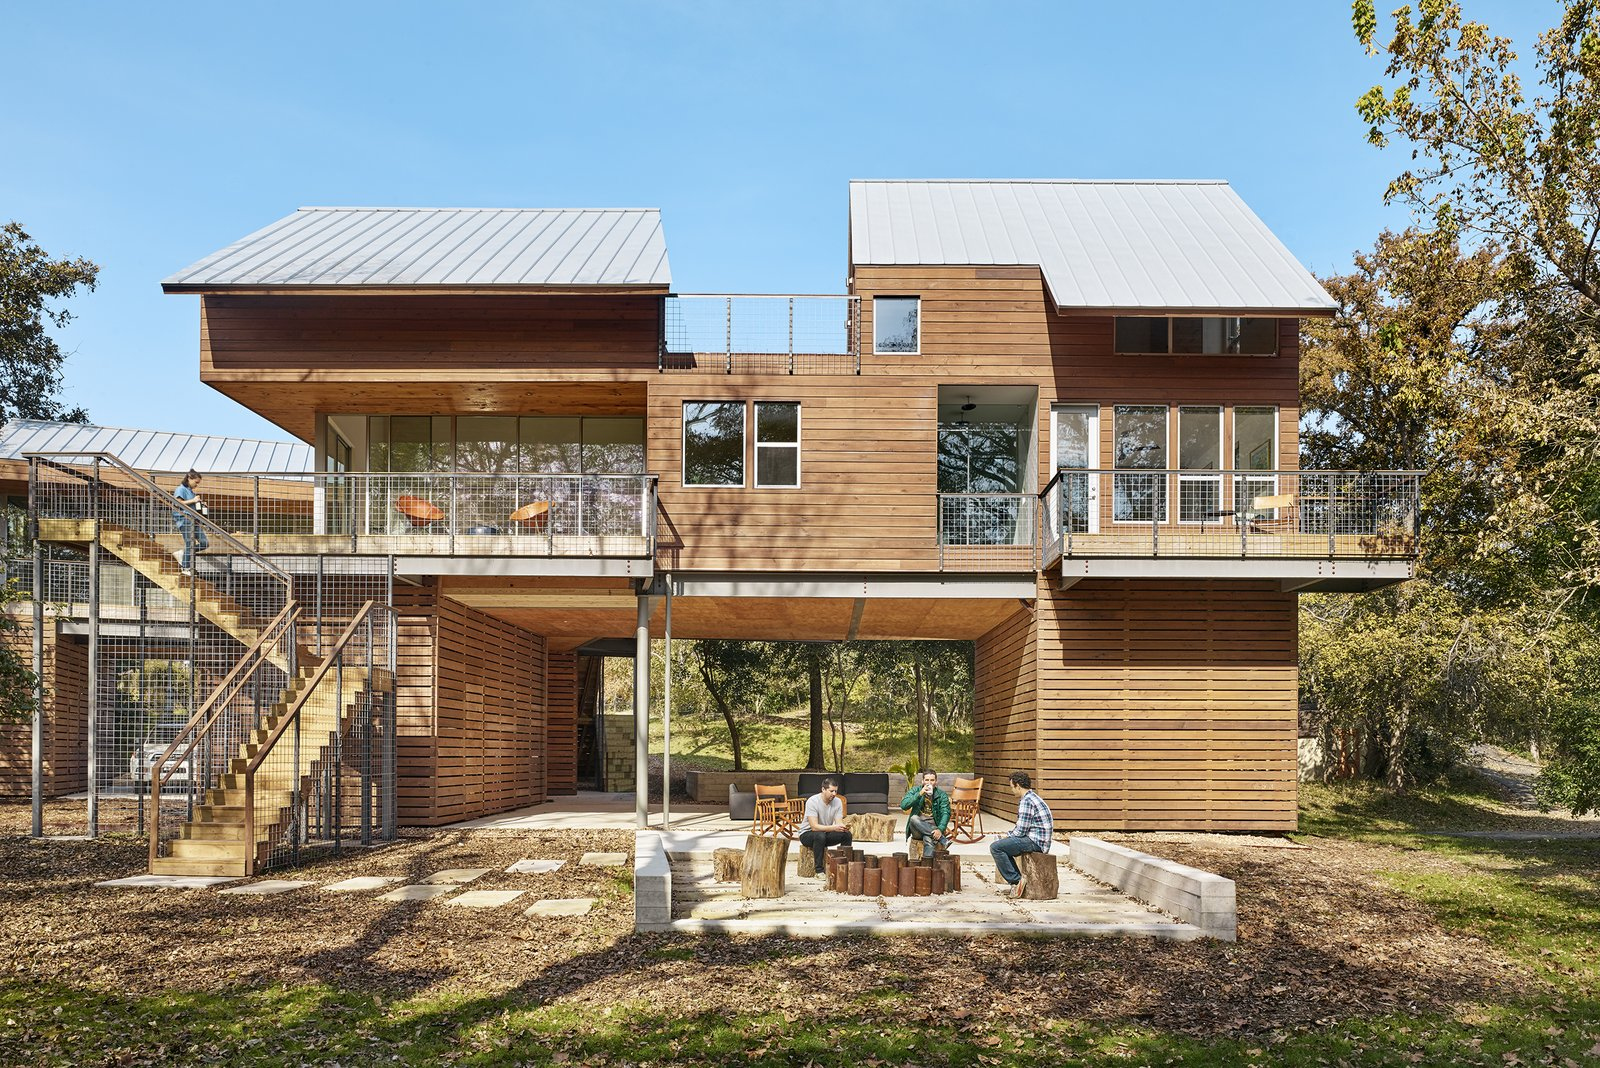 Exterior, House Building Type, Gable RoofLine, Wood Siding Material, Metal Siding Material, Flat RoofLine, Glass Siding Material, and Metal Roof Material View of house from Guadalupe River side by Low Design Office  Guadalupe River House